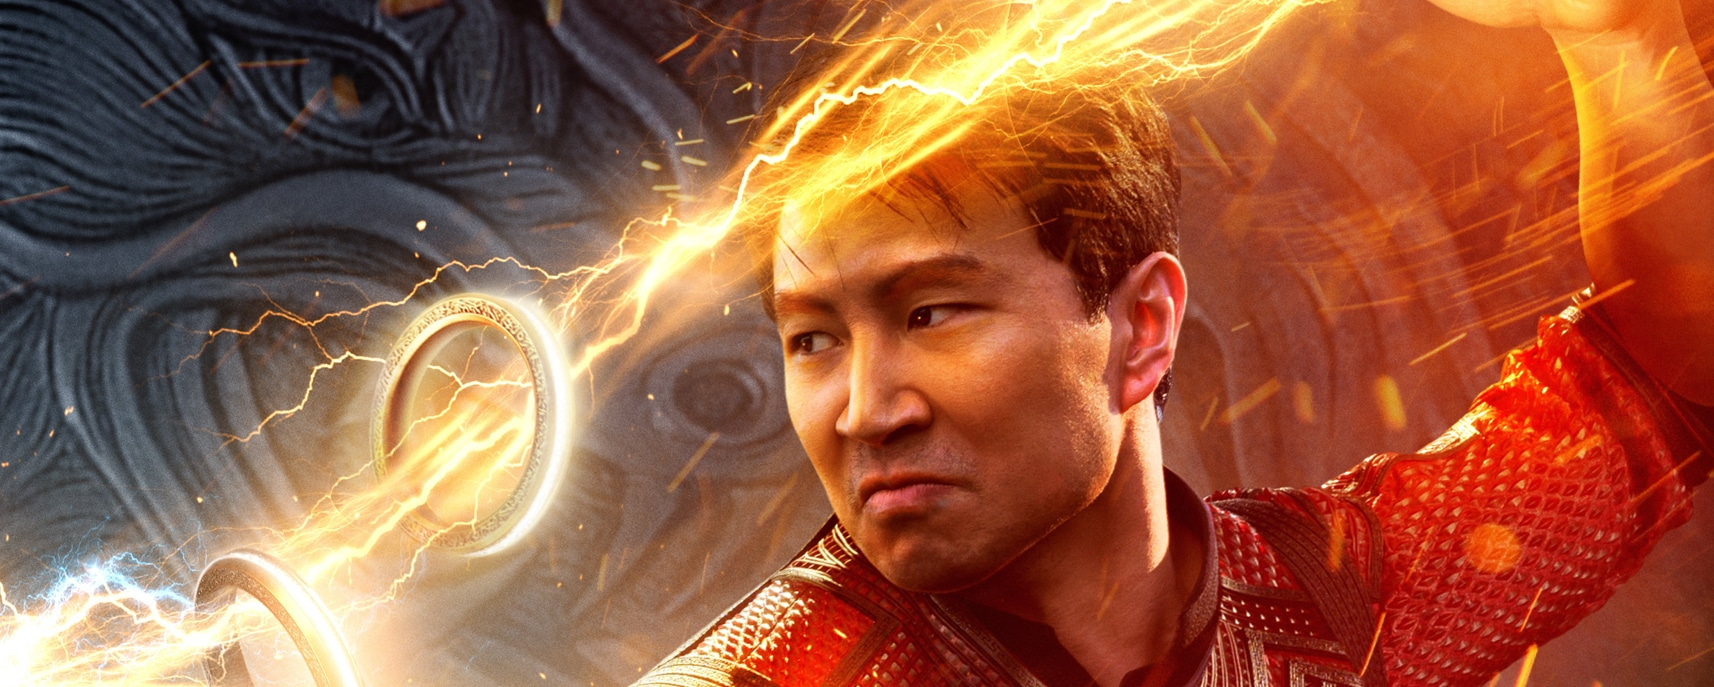 Shang-Chi (Simu Liu) wields the Ten Rings in the theatrical poster for Marvel Studios' Shang-Chi and the Legend of the Ten Rings